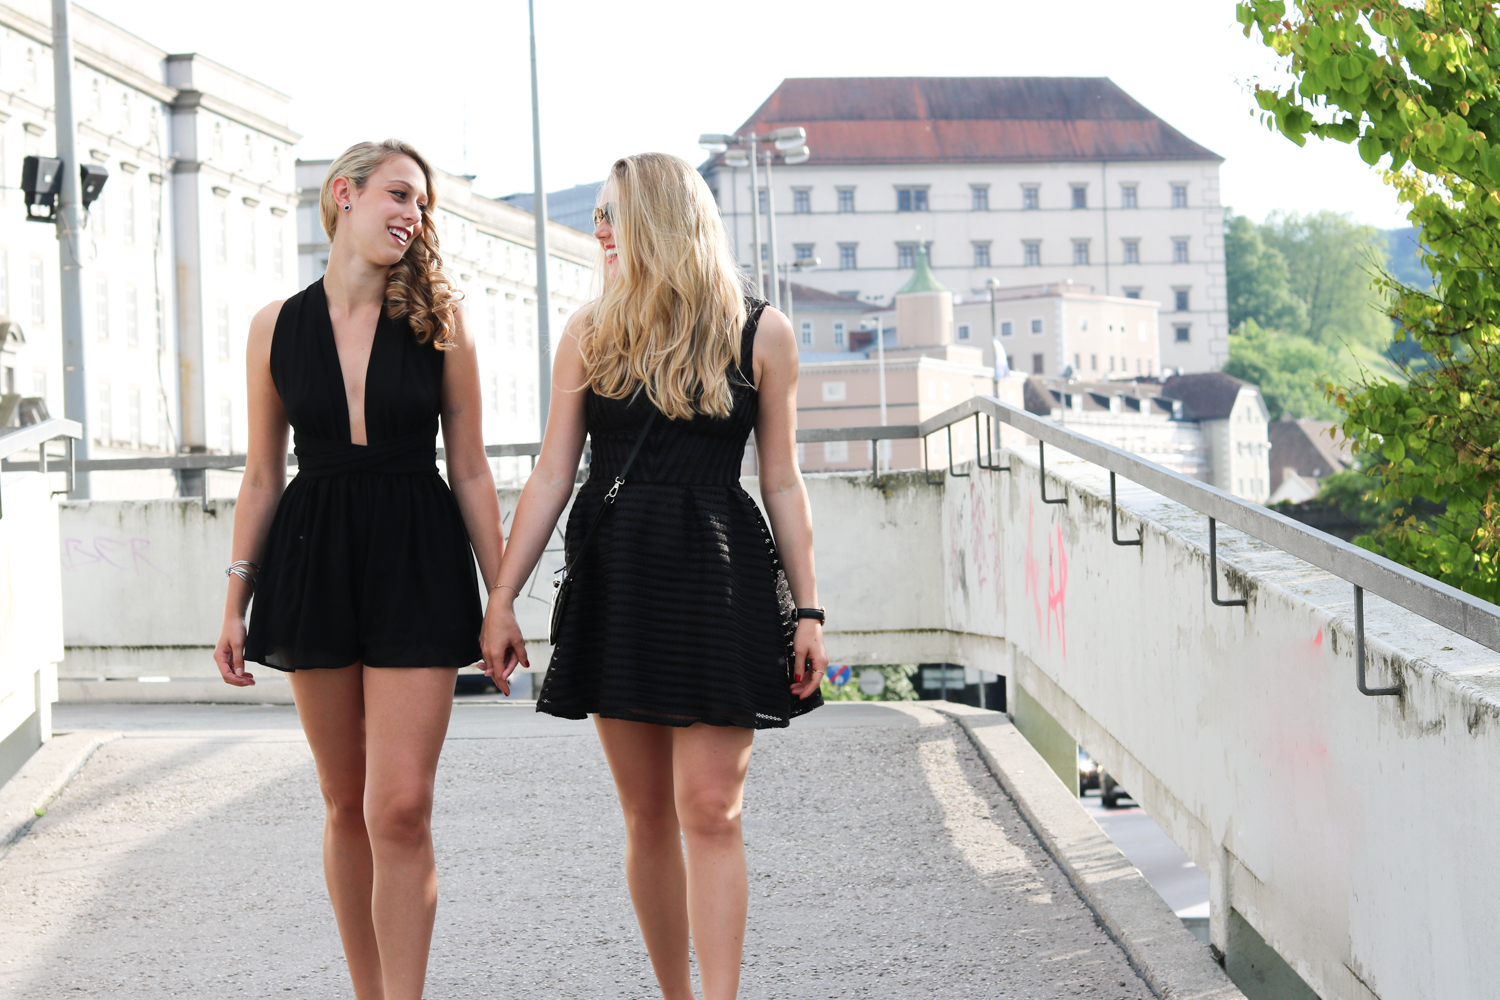 Bits and Bobs by Eva, Blog, Austrian Blog, Österreichische Blog, lovedailydose, your daily treat, fashion, beauty, food, interior, fitness, new, bitsandbobsbyeva.com, travel, spring, Frühling, Juni, chic summer party, summer party outfit, outfit of the night, little black dress, ein hoch auf unsere freundschaft, best friends, kathi, happy girls, douglas